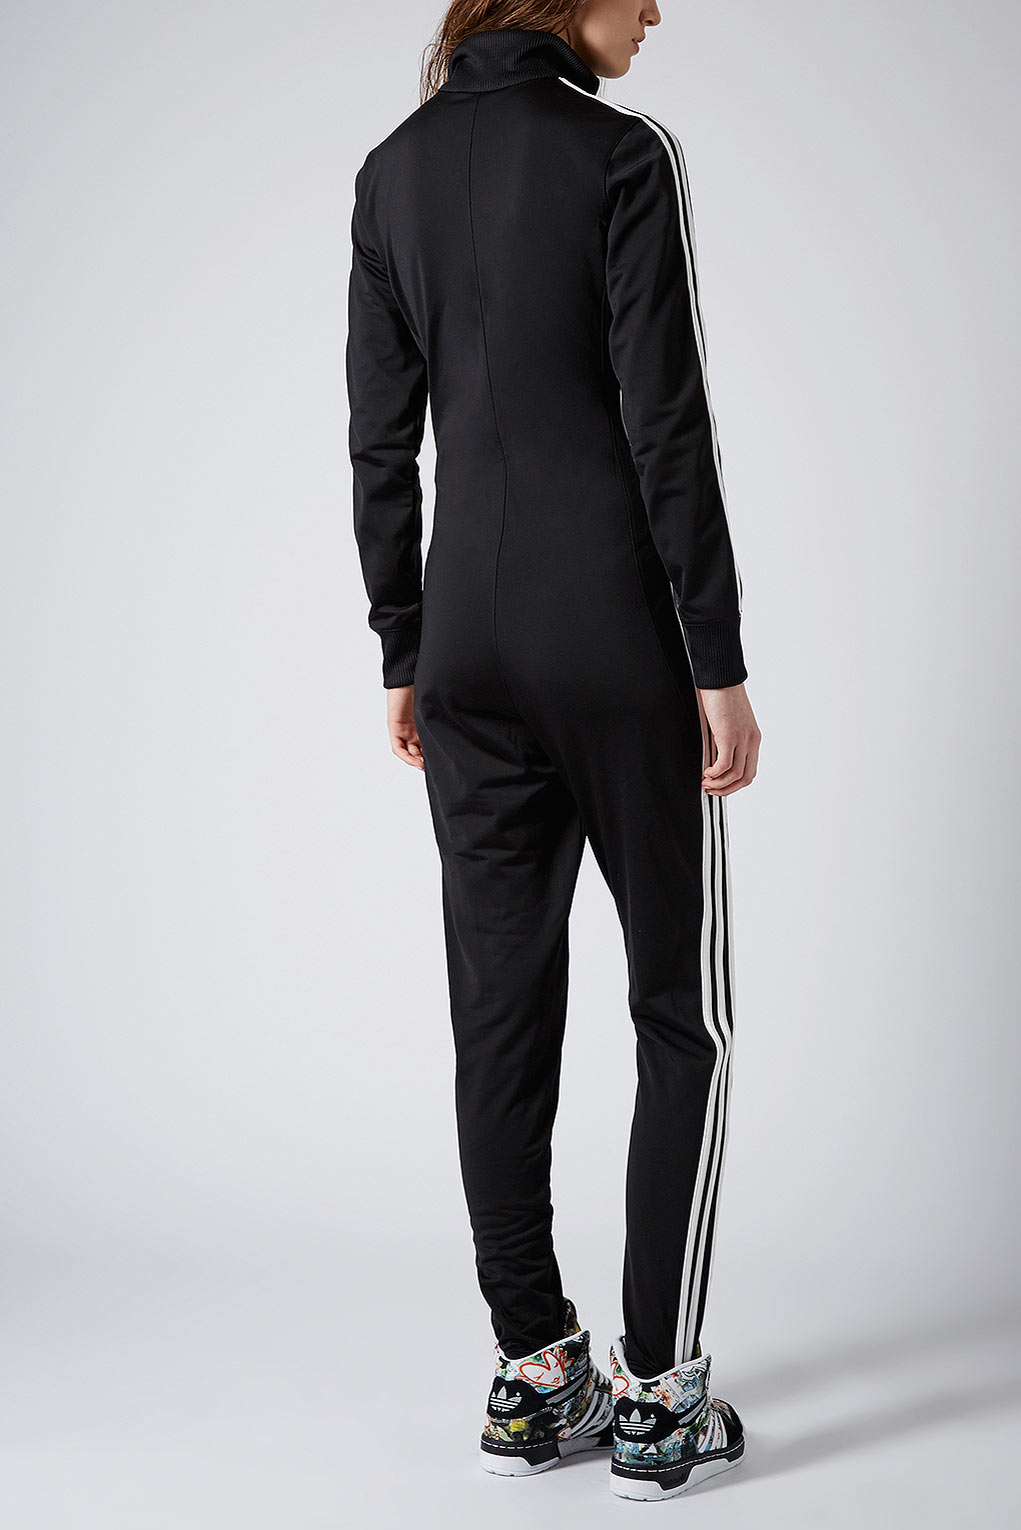 Cool 25 Perfect Adidas Women Jumpsuits U2013 Playzoa.com